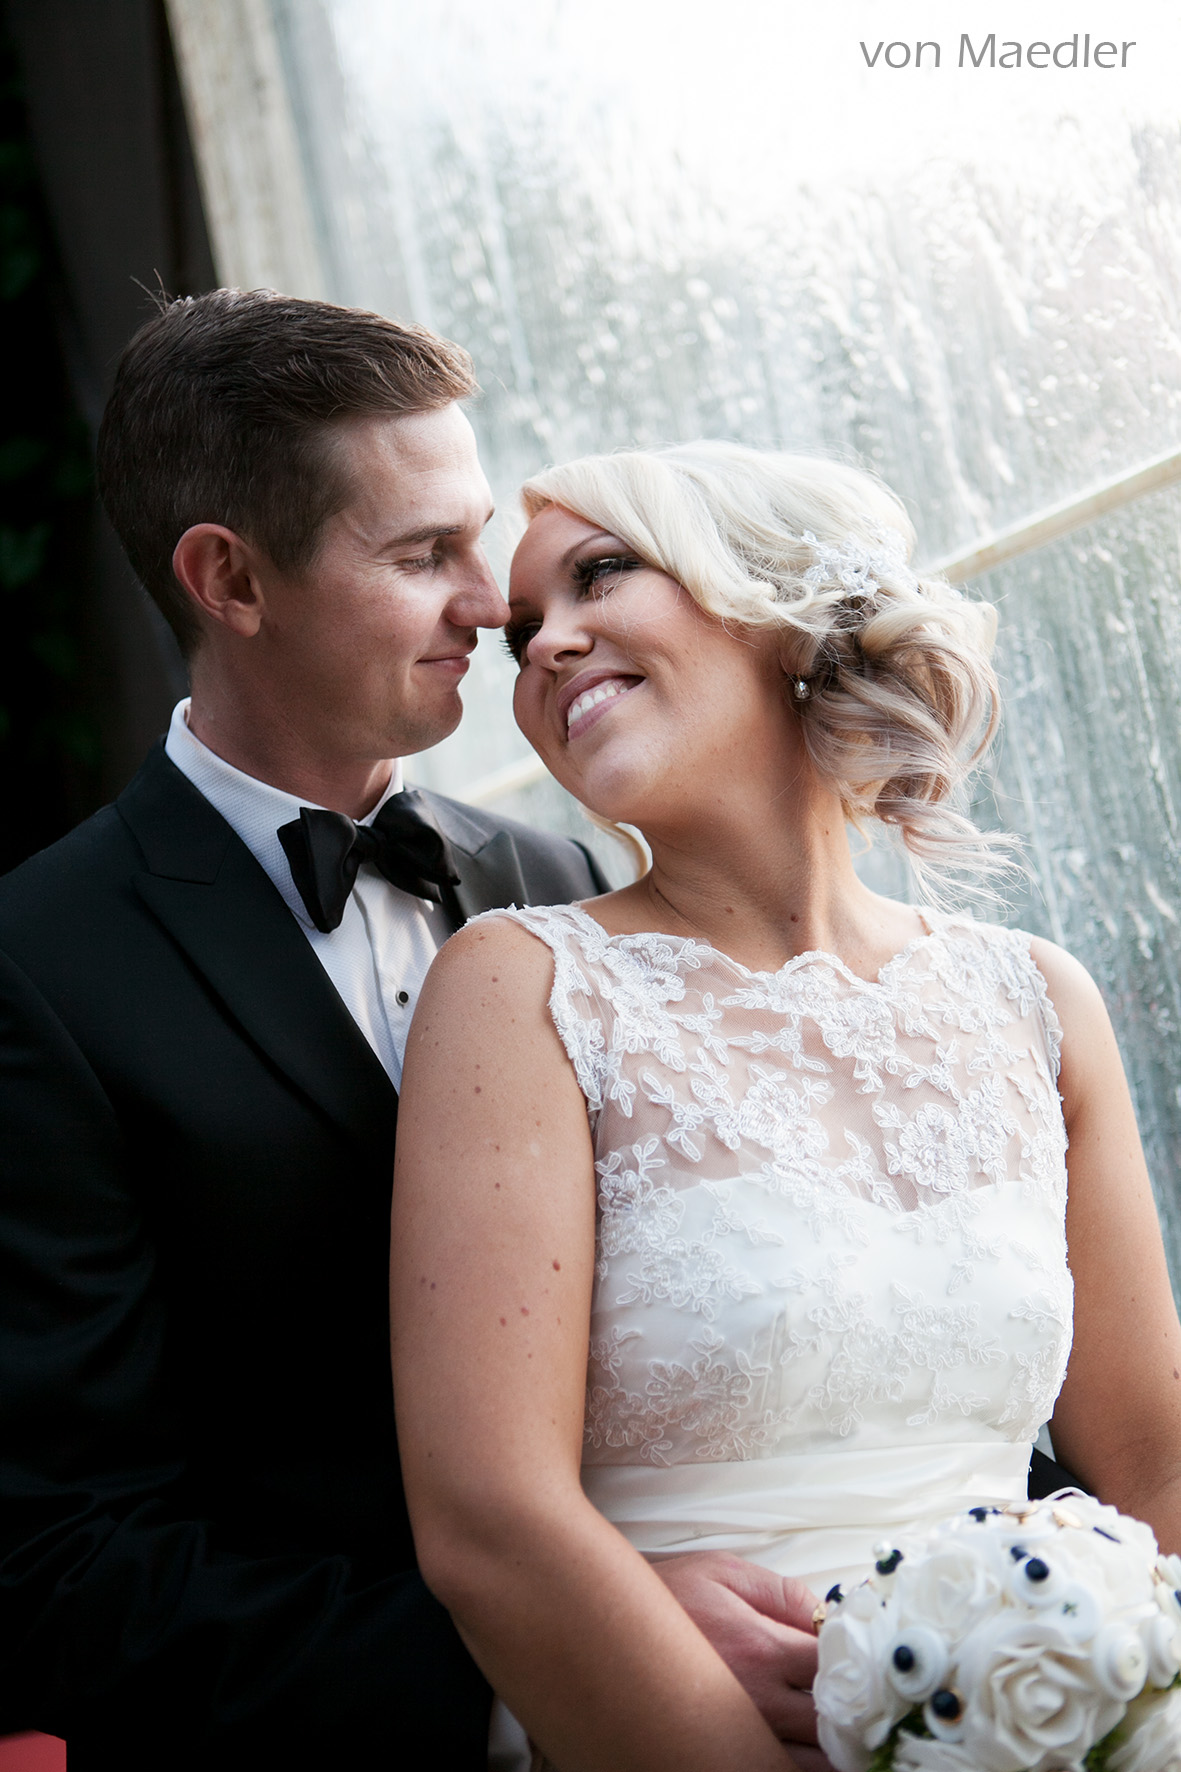 von Maedler - Wedding Photography - vonm.com.au - 098